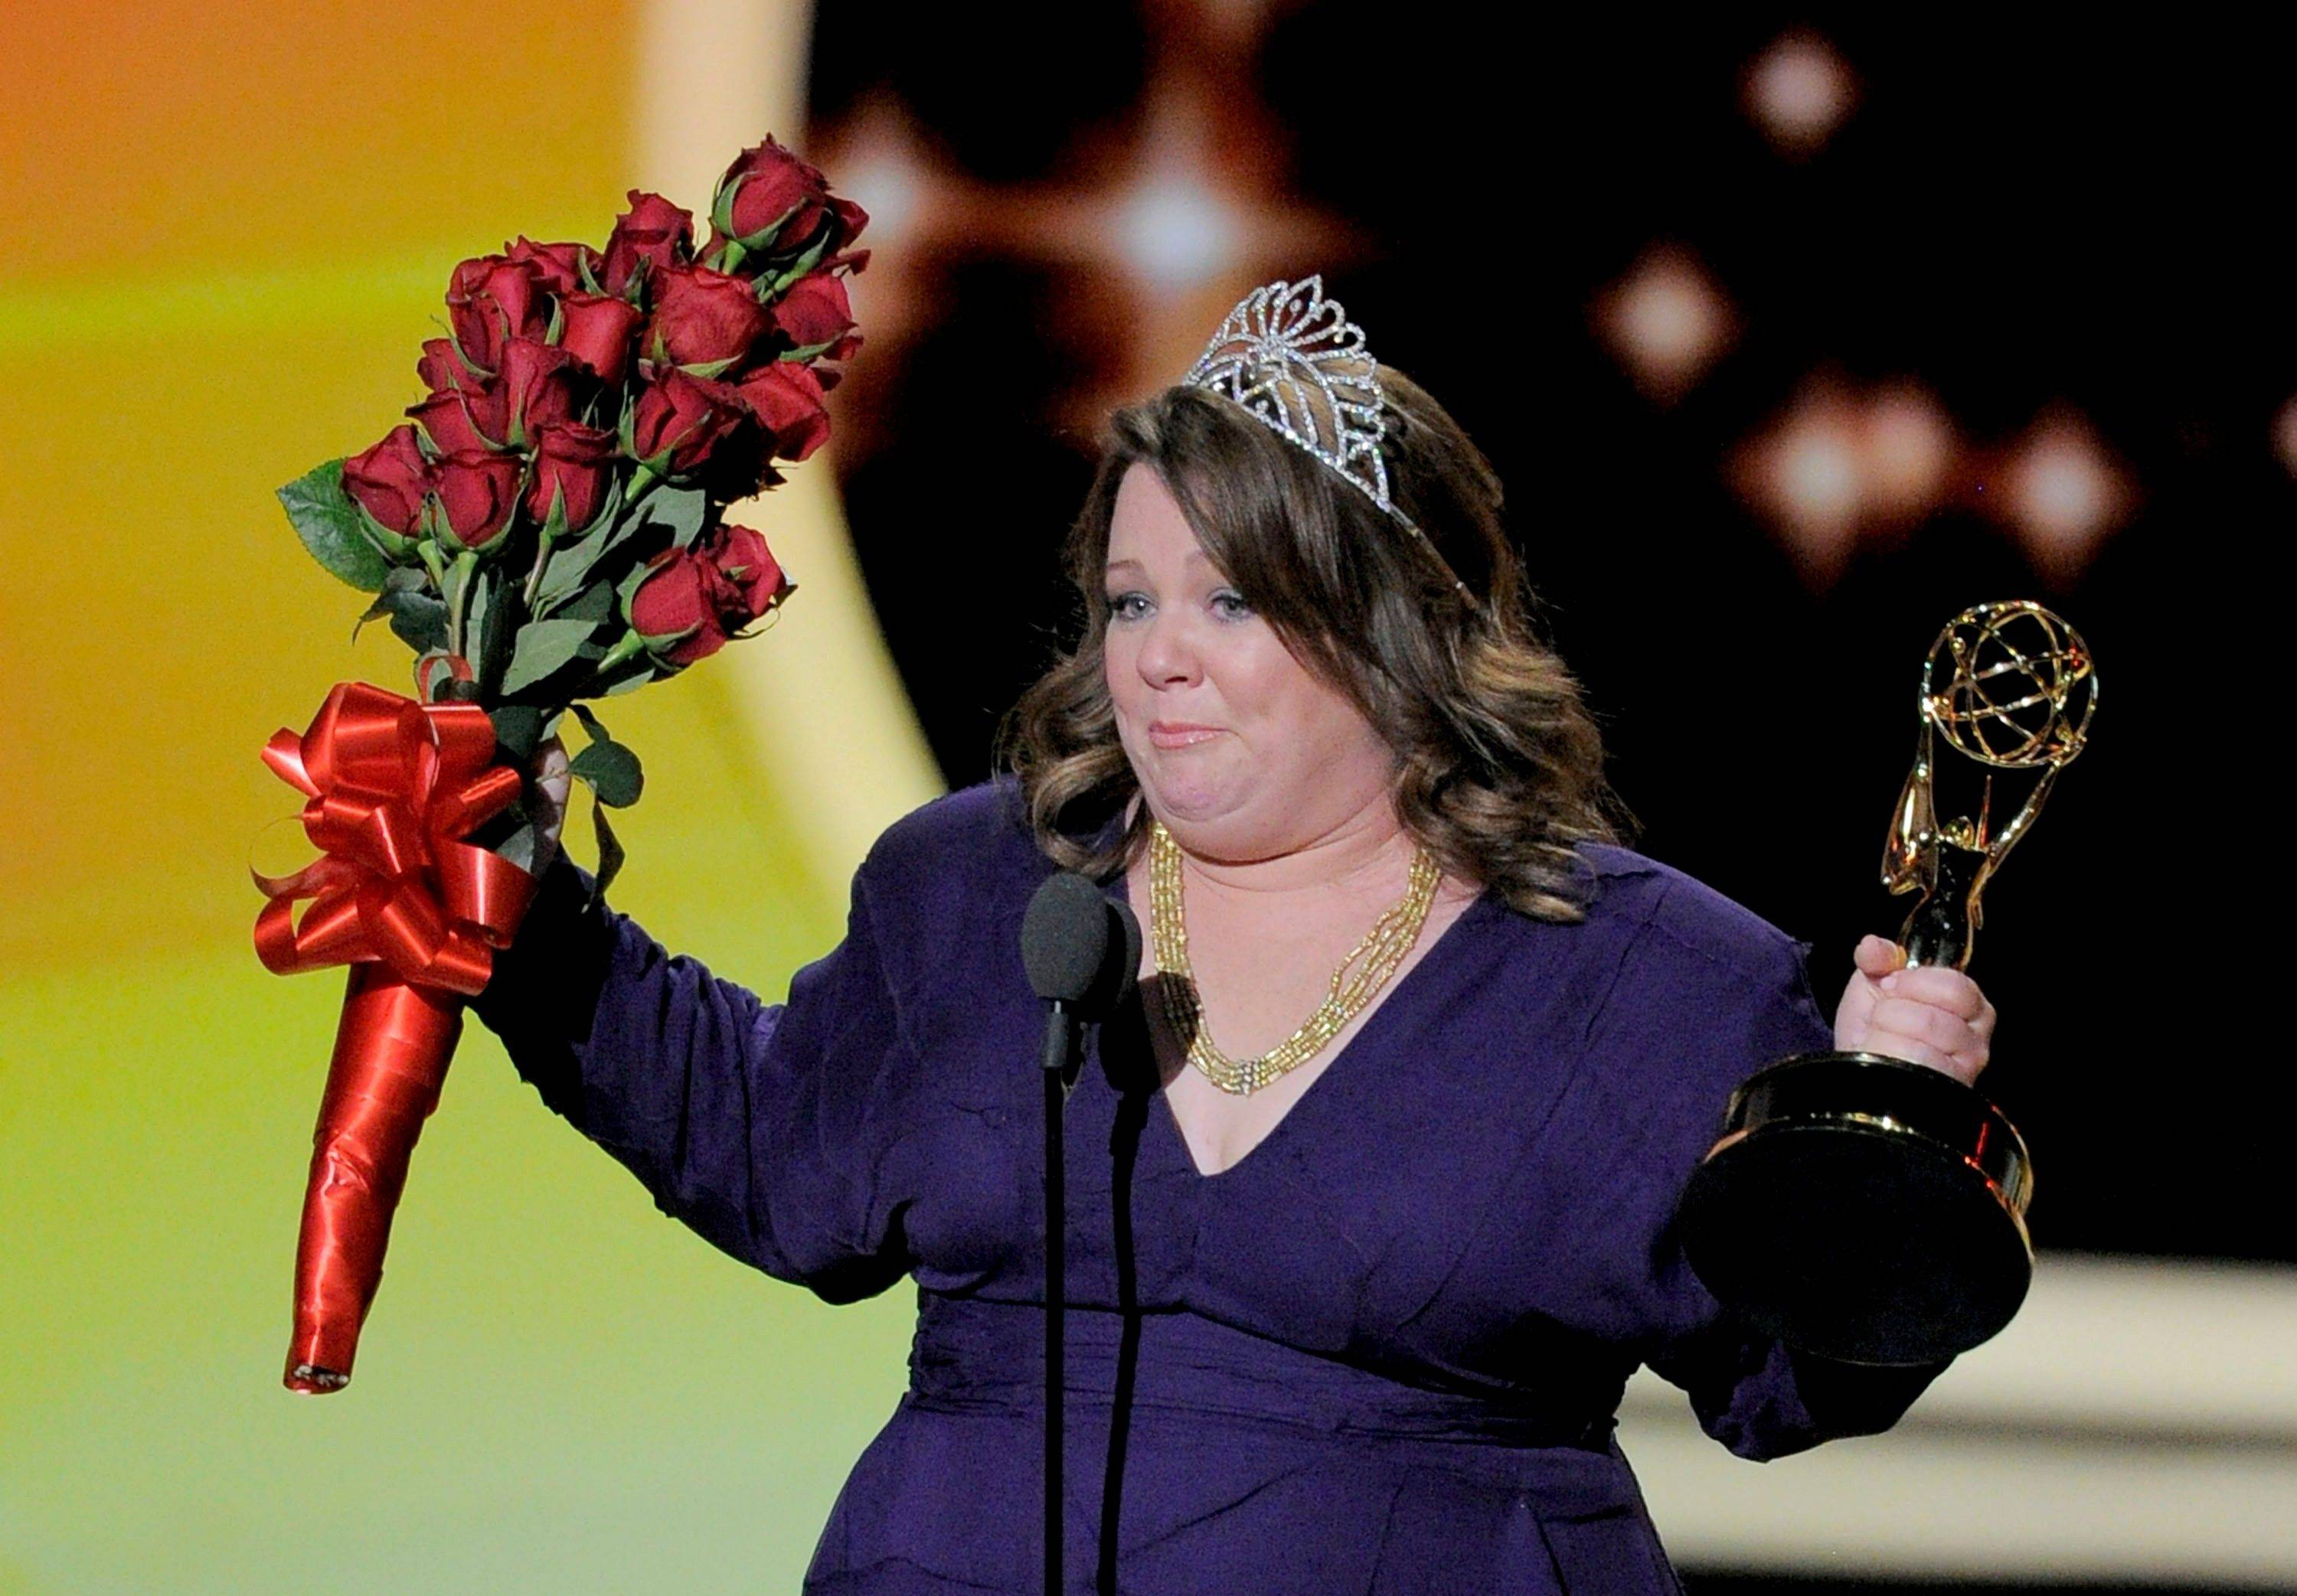 """Mike and Molly"" star Melissa McCarthy accepts the award for outstanding lead actress in a comedy series. A beaming McCarthy said, ""Holy smokes. Wow, it's my first and best pageant ever. I'm from Plainfield, Ill., and I'm standing here and it's kind of amazing."""